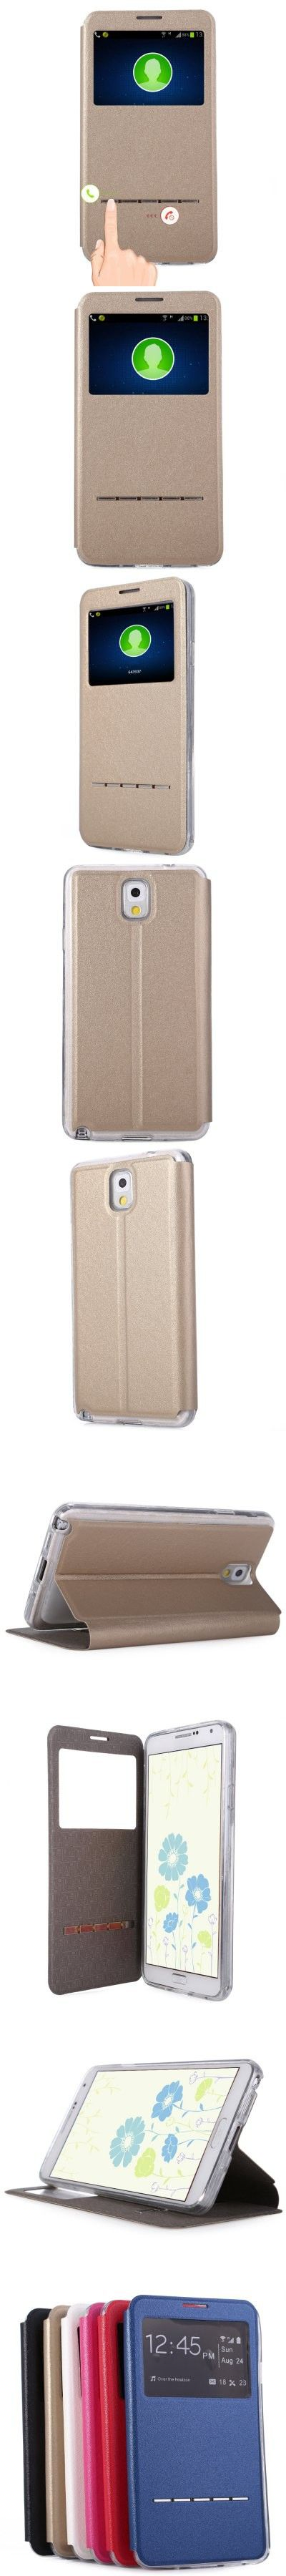 Samsung Accessories | Matte Leather Protective Skin for Samsung Note 3 $3.99